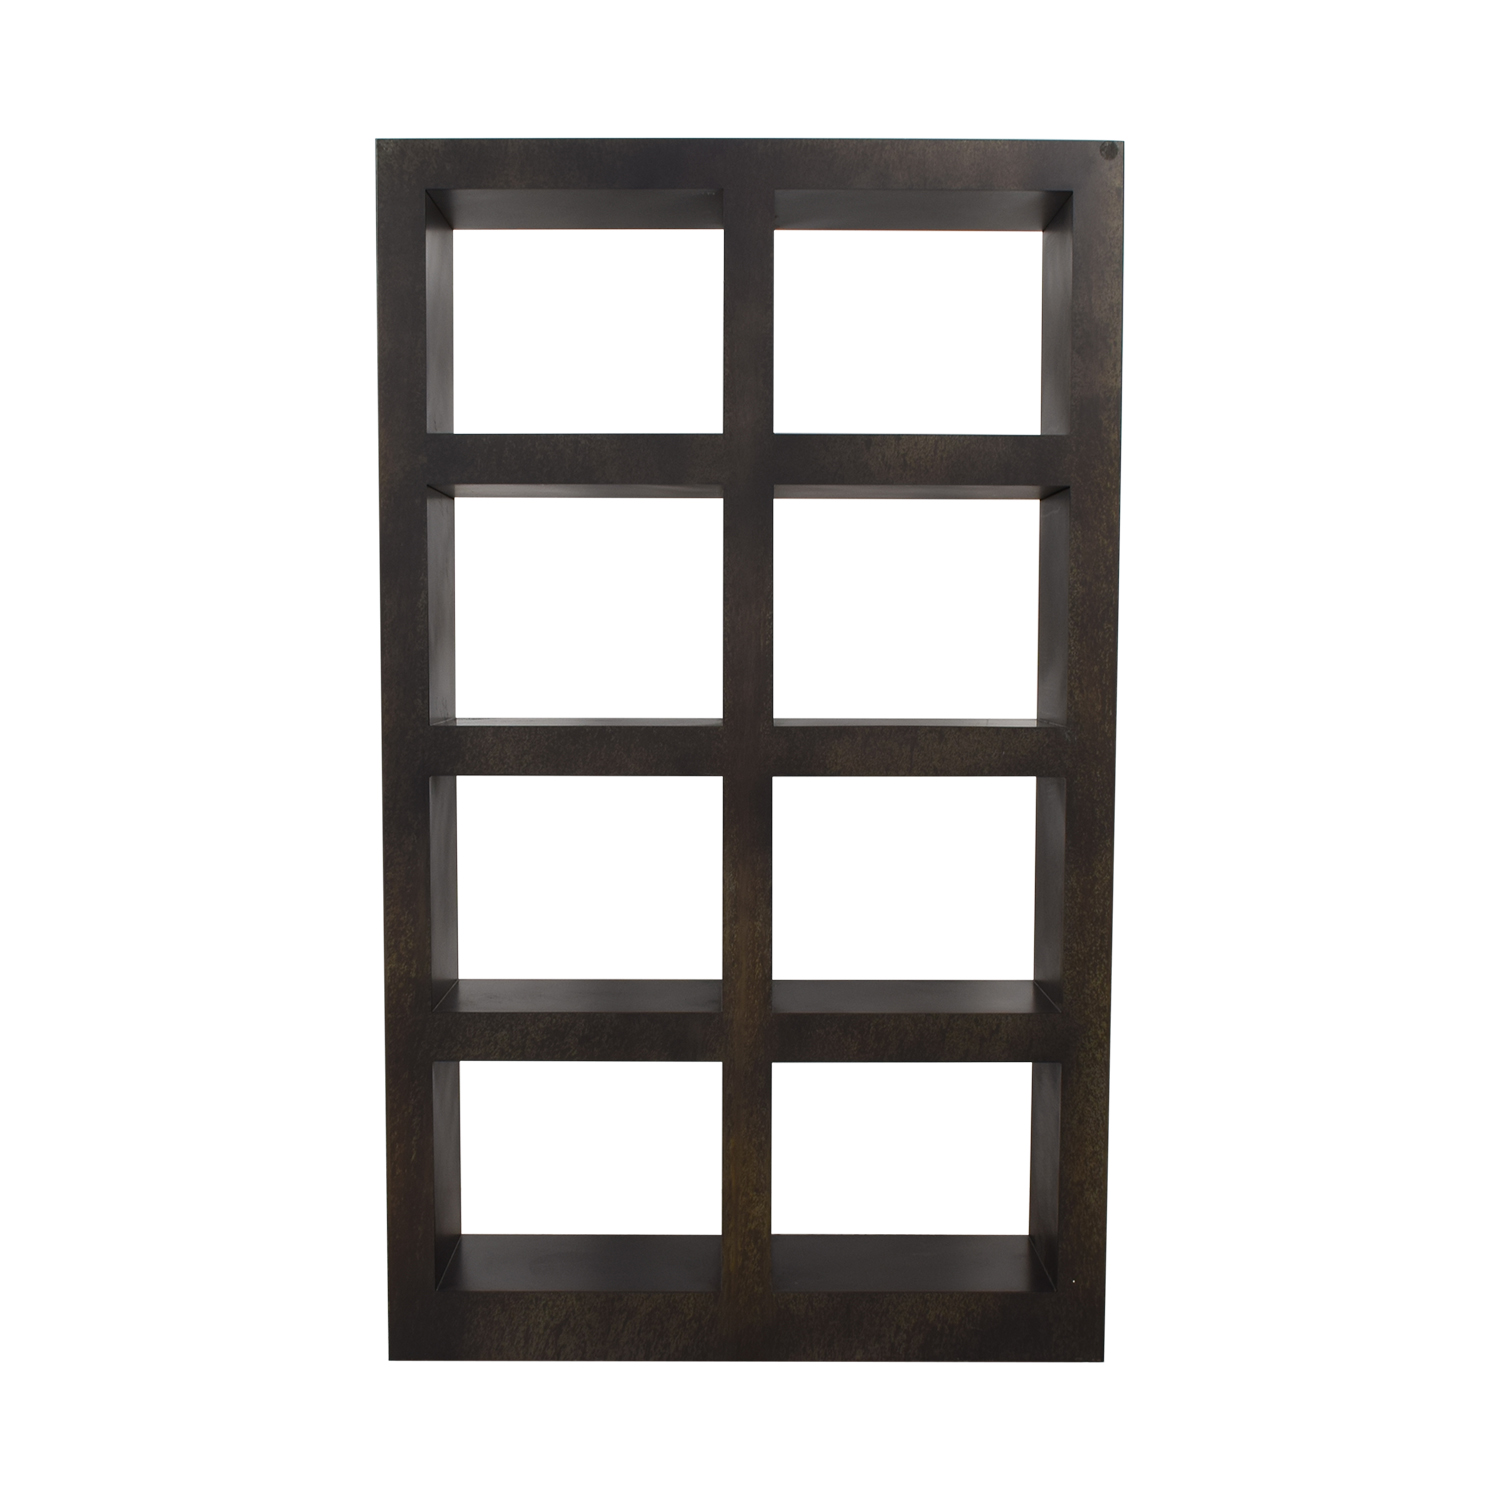 shop Crate & Barrel Shadowbox Storage Tower Crate & Barrel Bookcases & Shelving